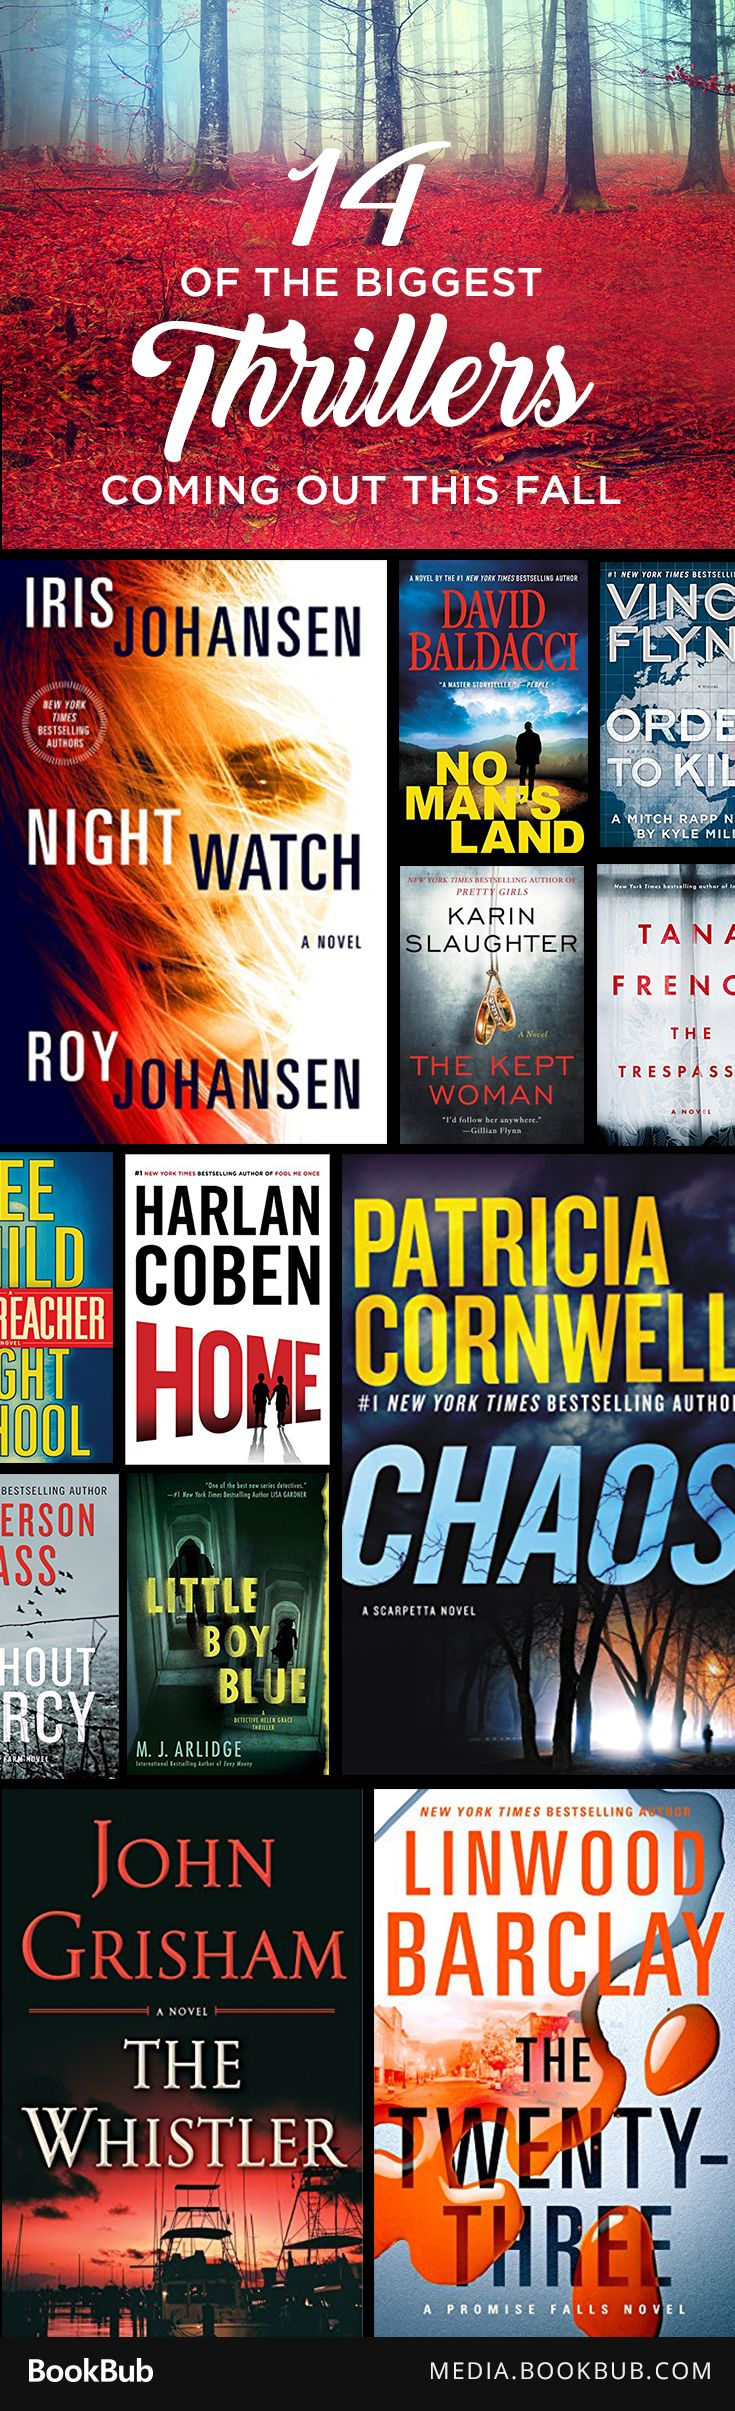 12 Booksing Out This Fall For Stephen King Fans  Crime, Thrillers And  Halloween